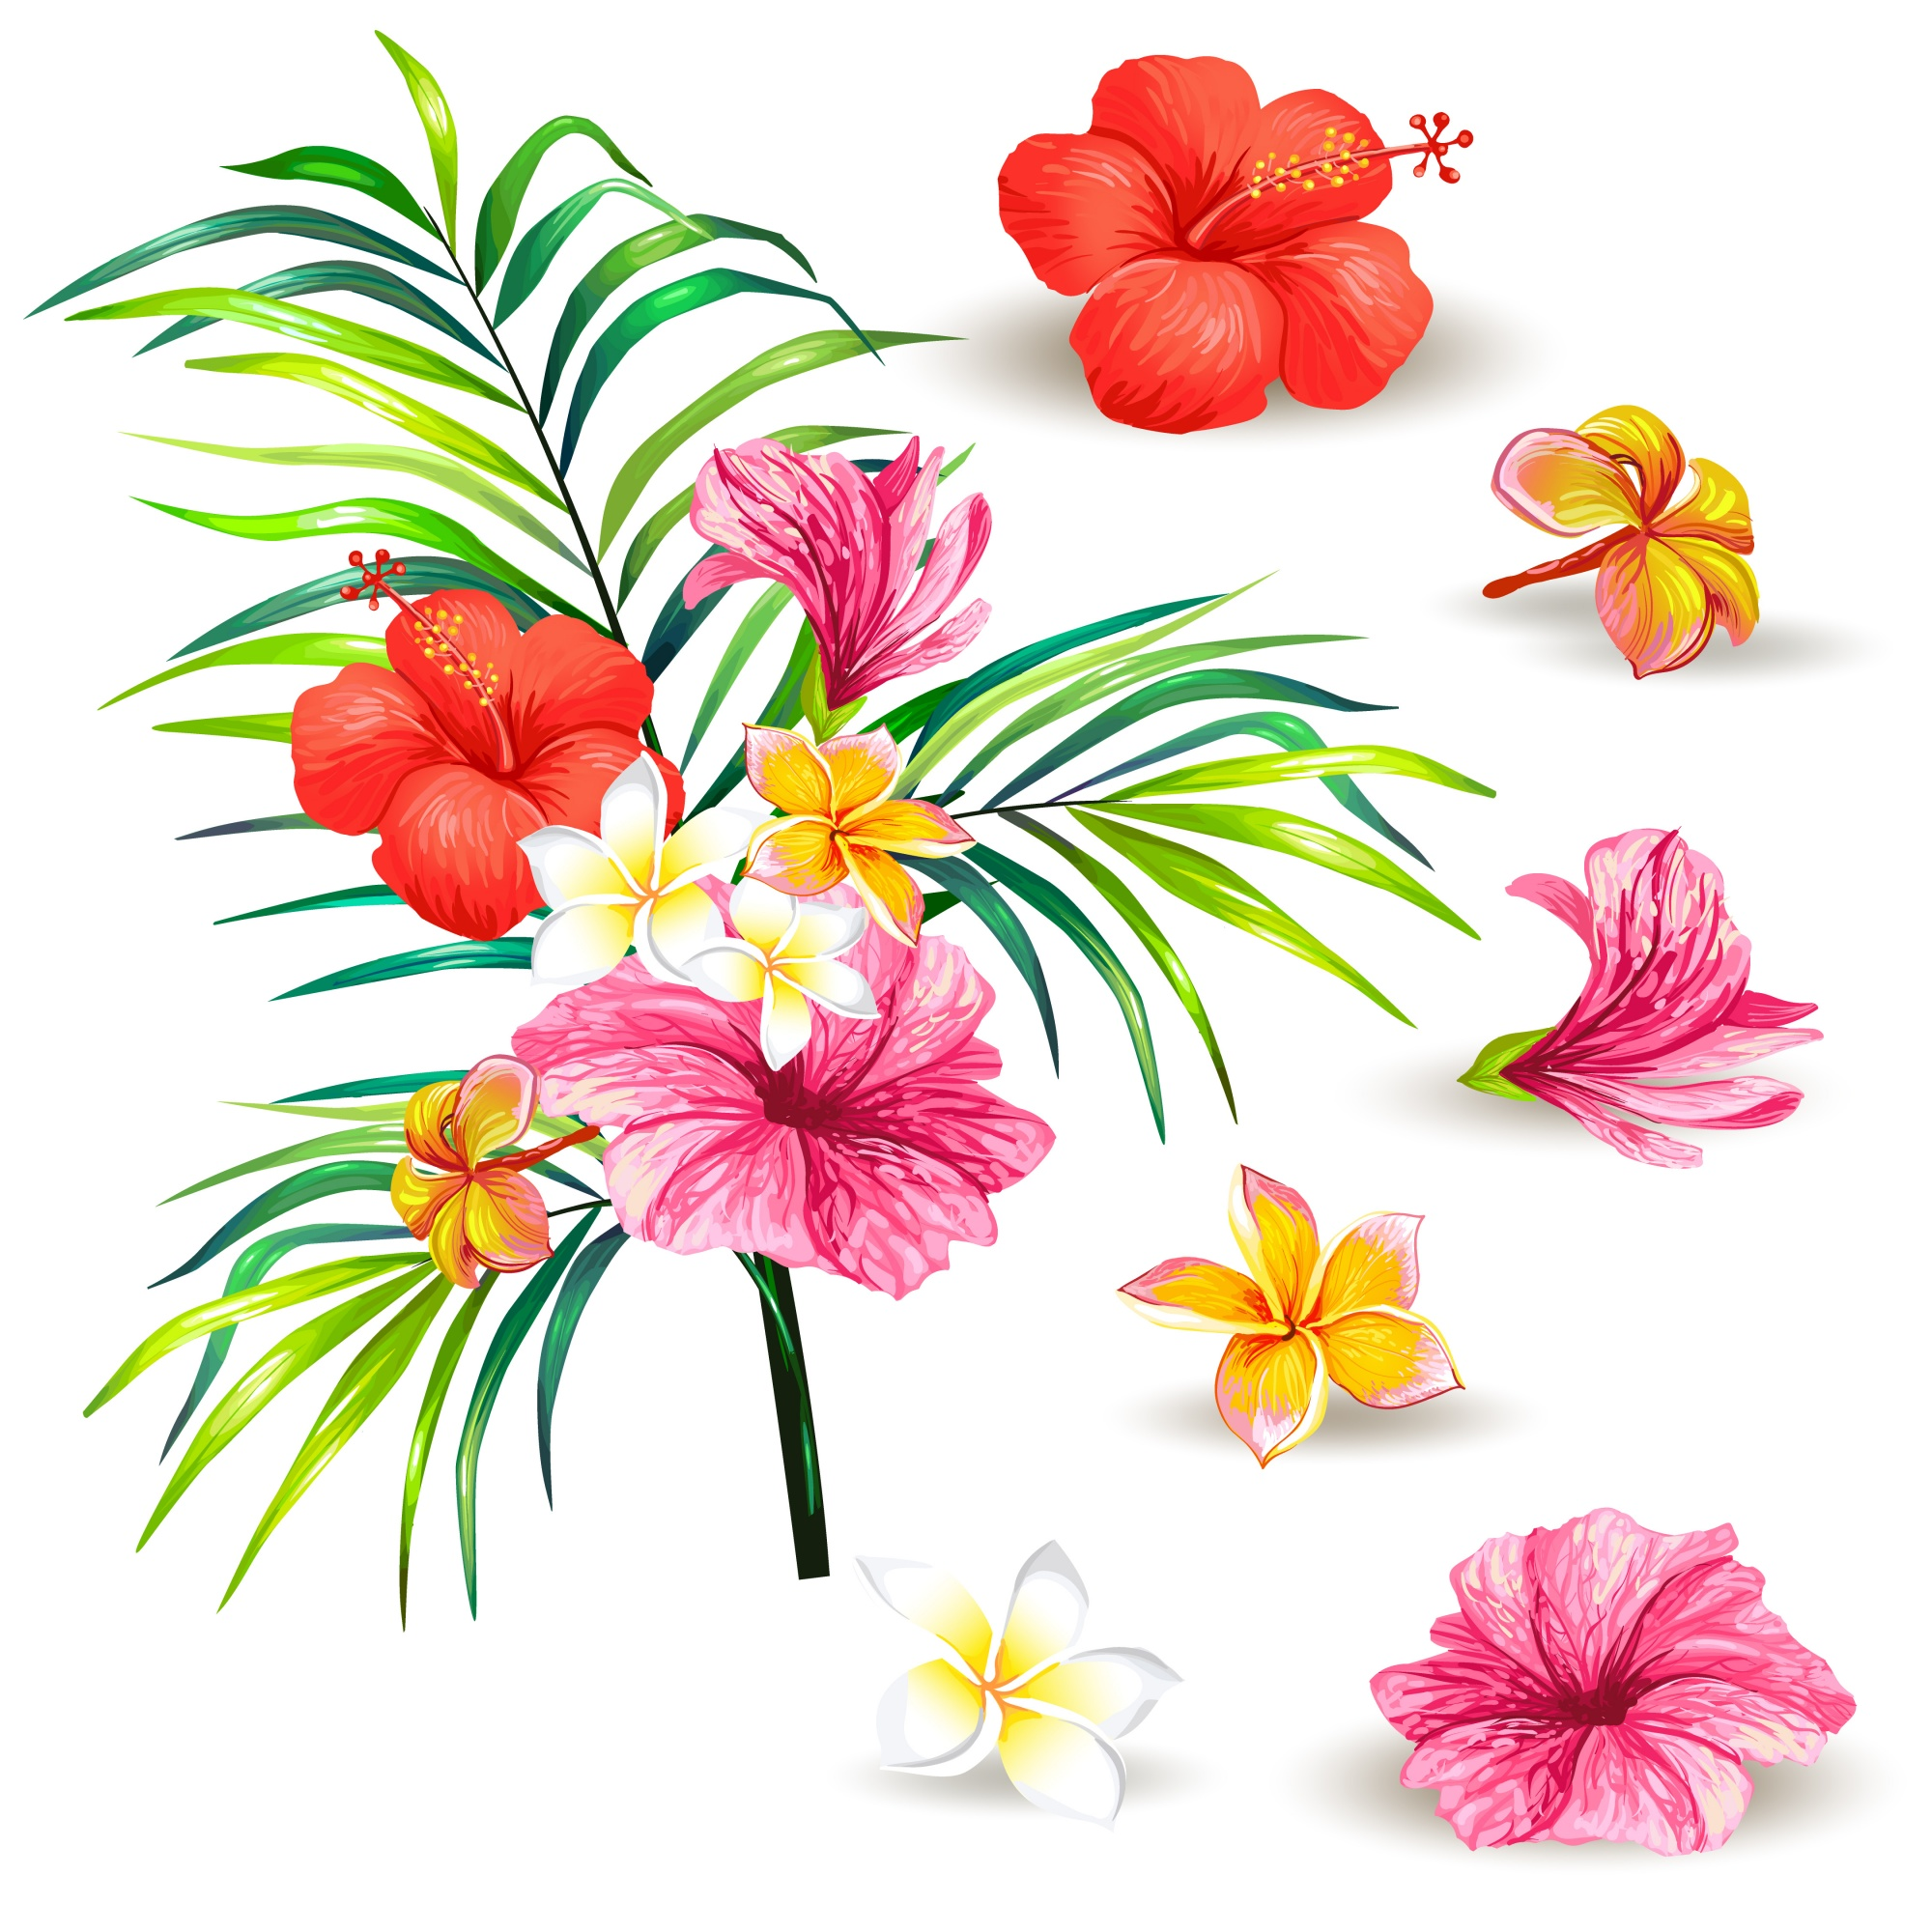 tropical vectors  photos and psd files free download vector brush strokes illustrator vector brush strokes png